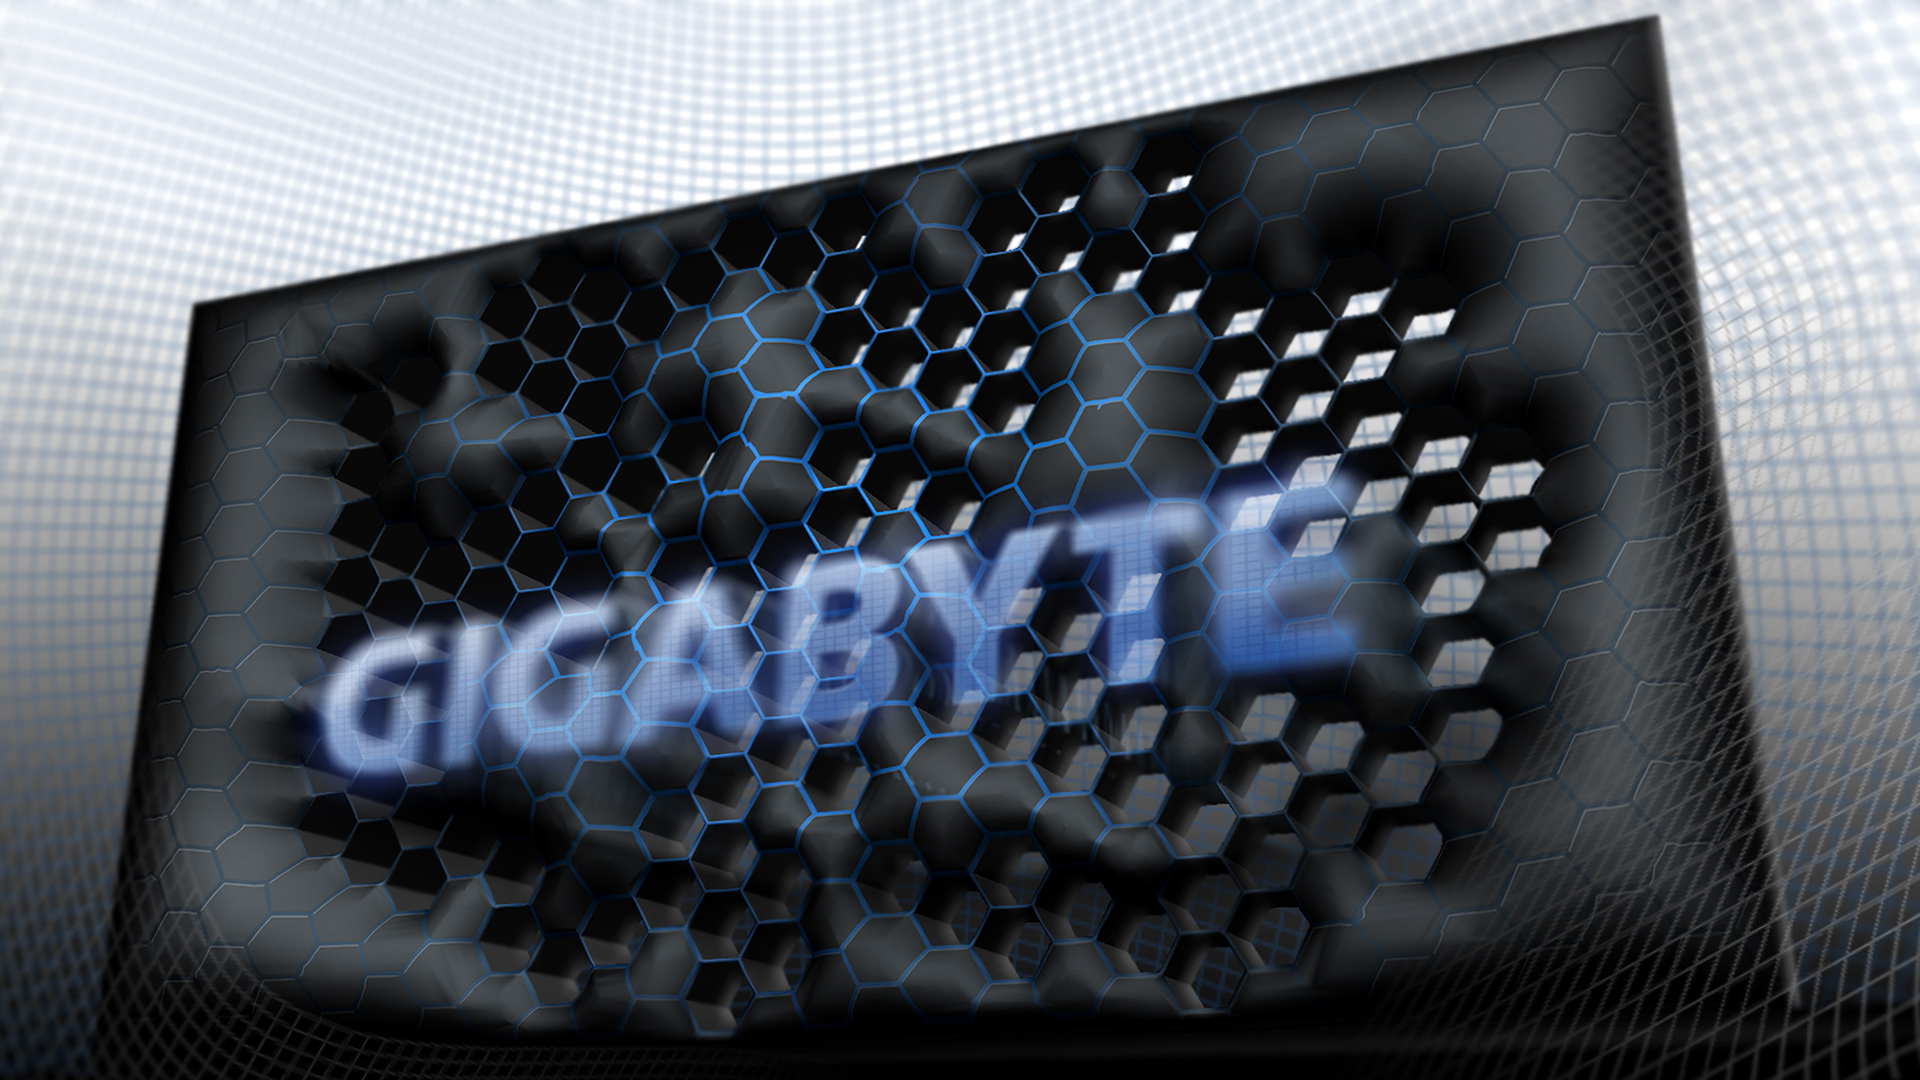 gigabyte motherboards computer wallpapers - photo #8